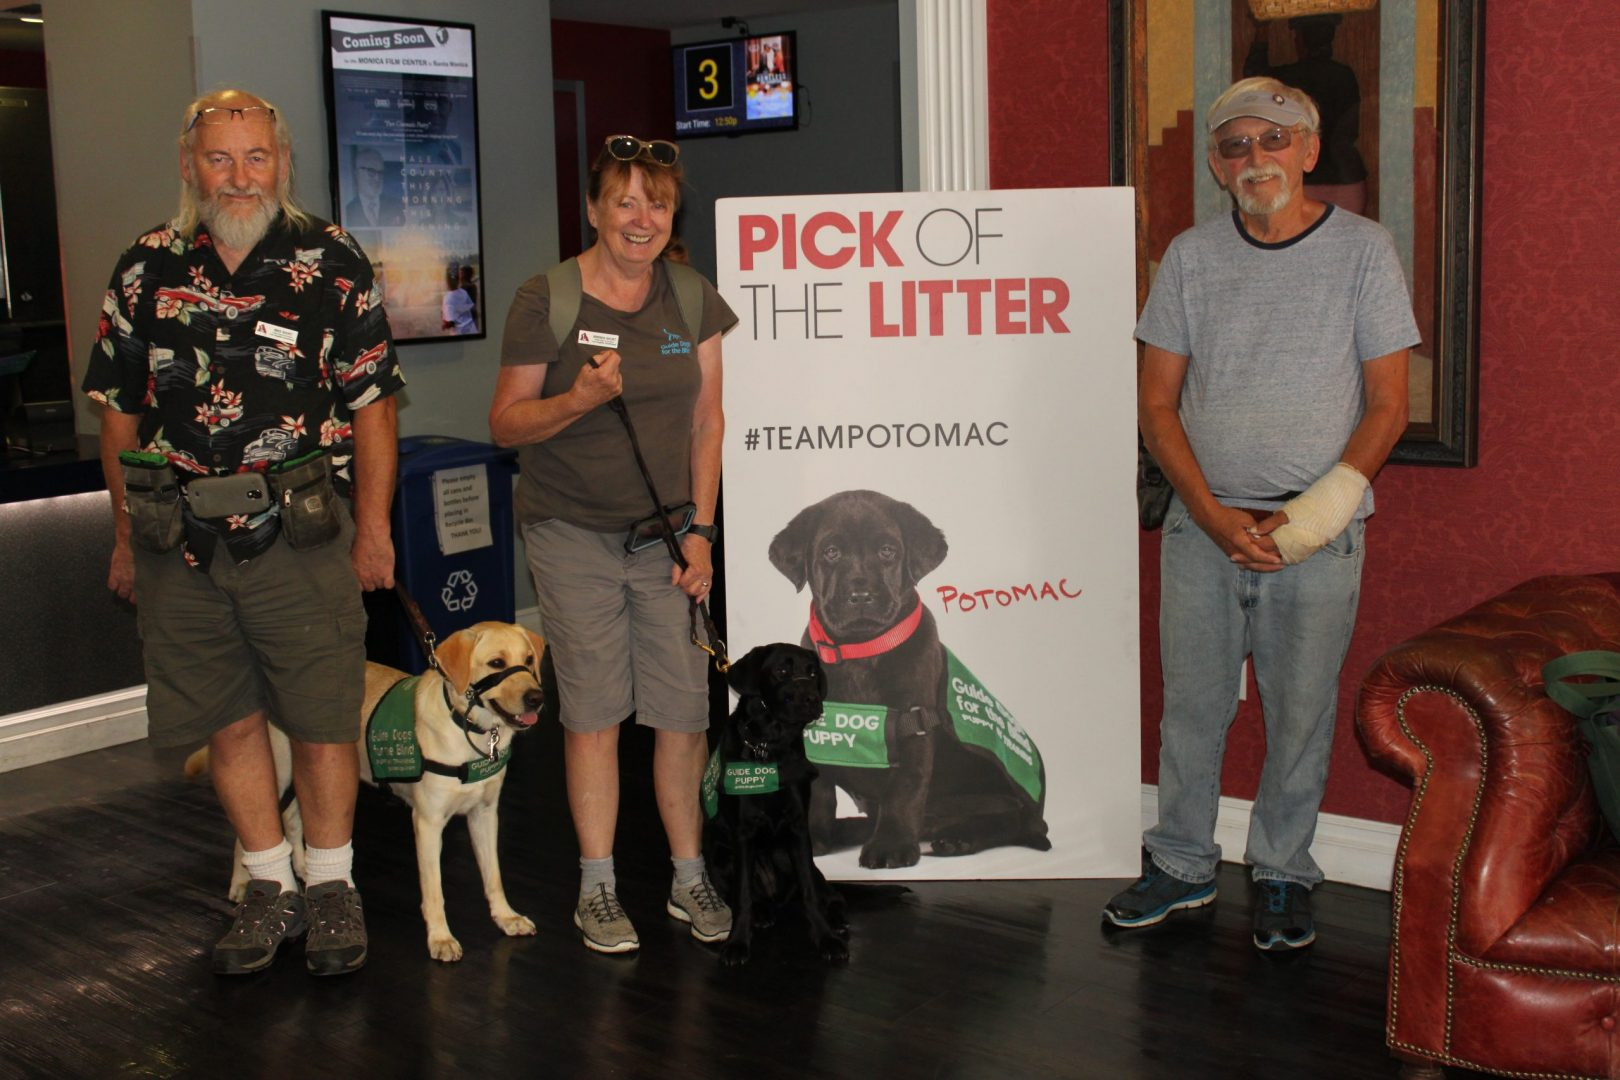 Mike with Dover, Brenda with Belfast, and Tom at viewing of first 'Pick of the Litter' movie